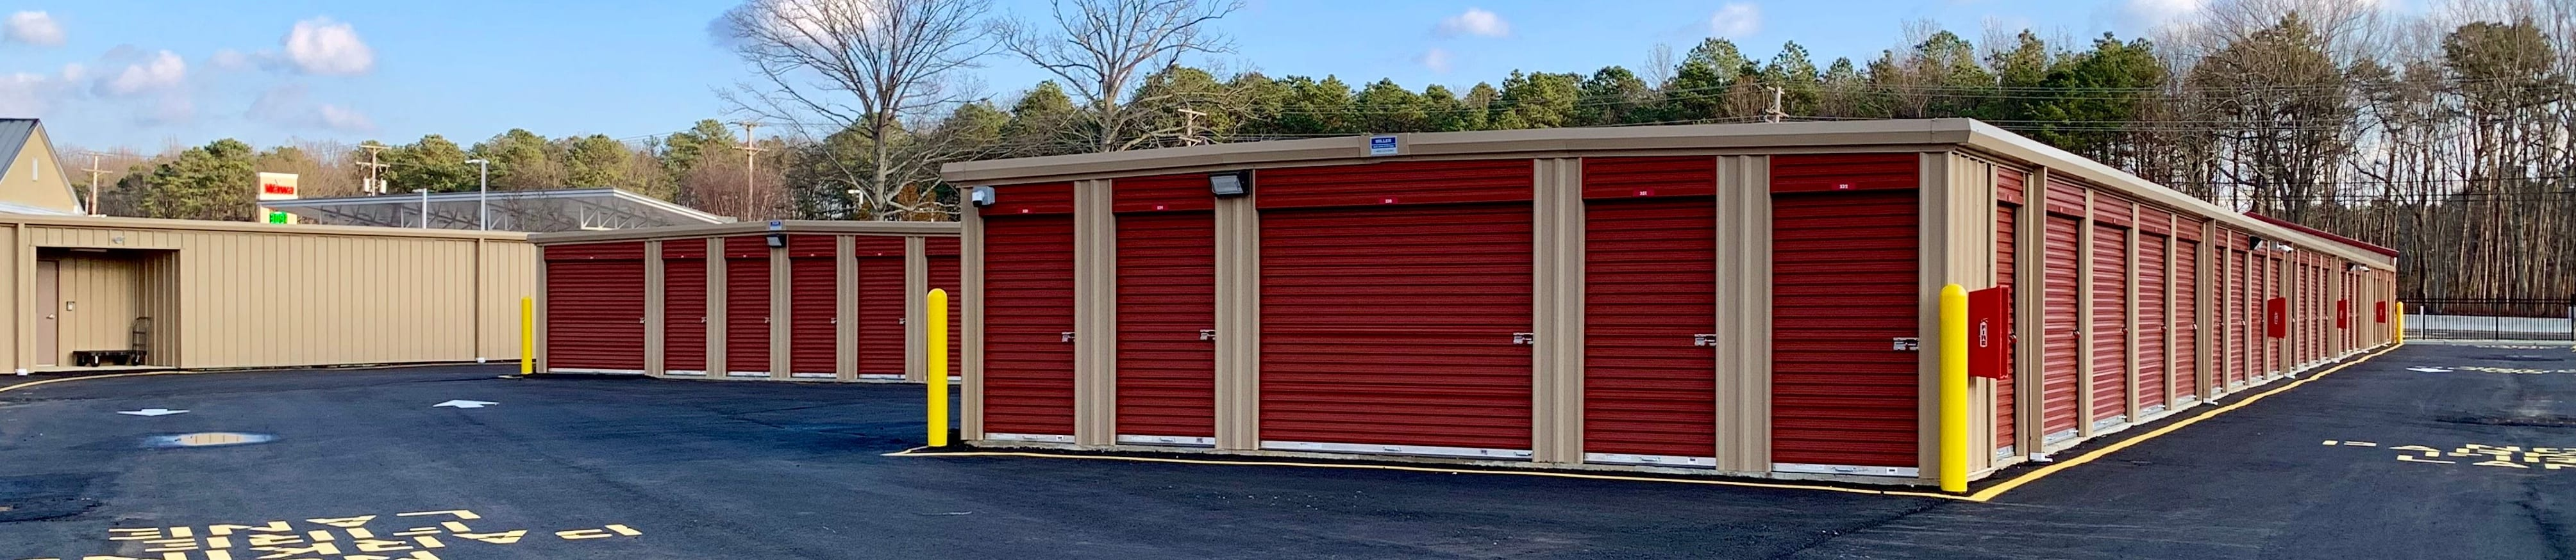 Unit sizes and prices at Storage Authority Monmouth Rd in Millstone Township, New Jersey.